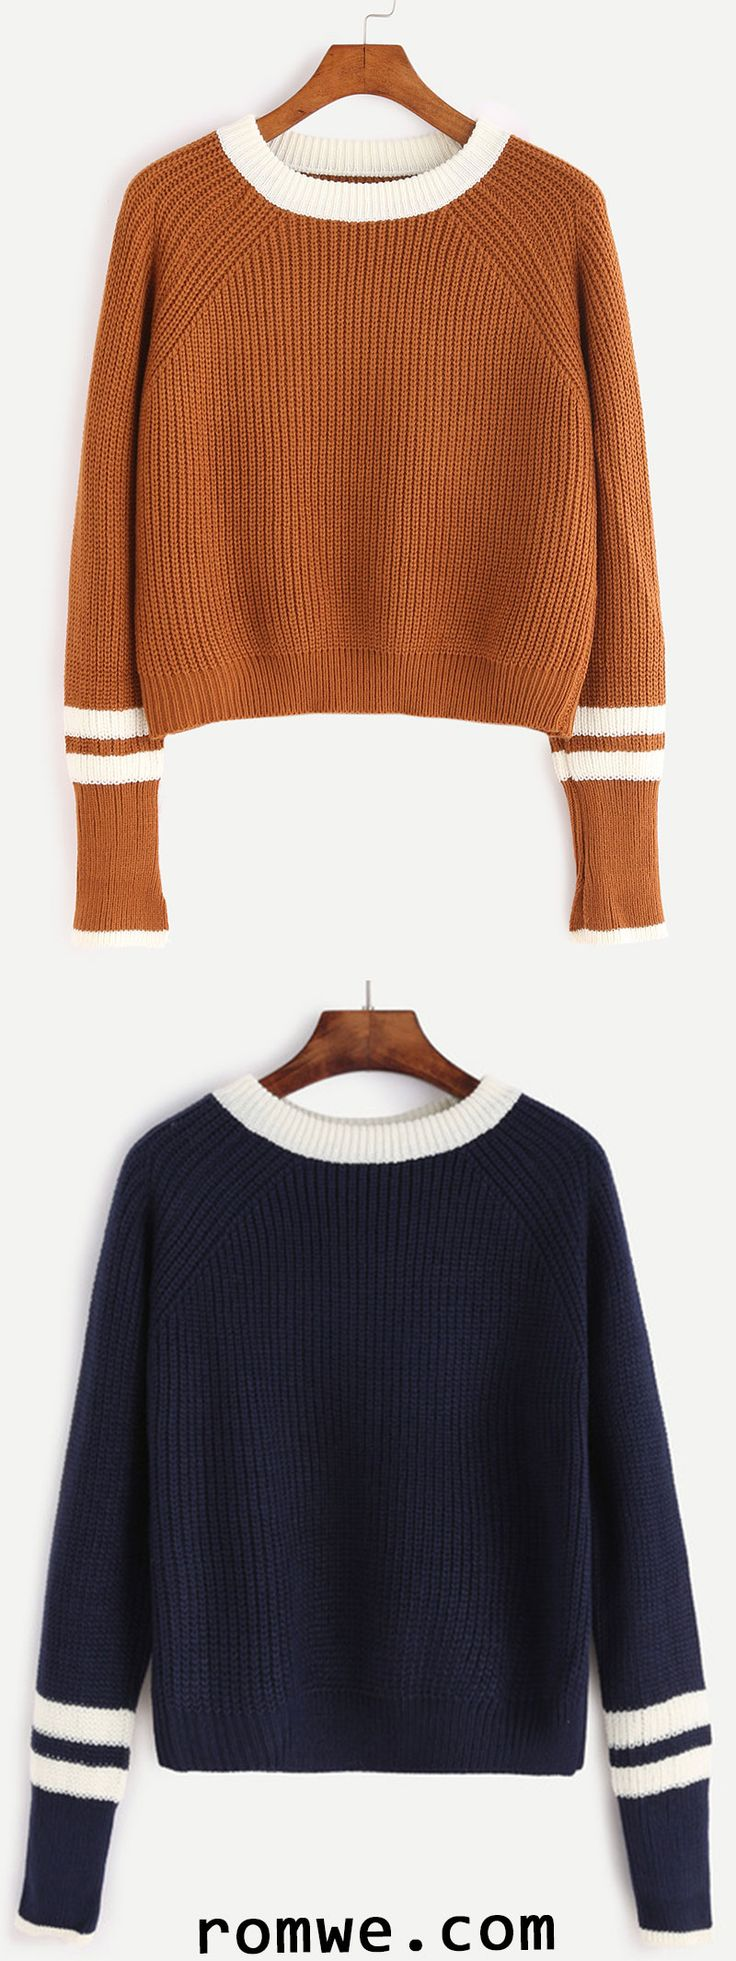 Contrast Neck Striped Trim Sweater